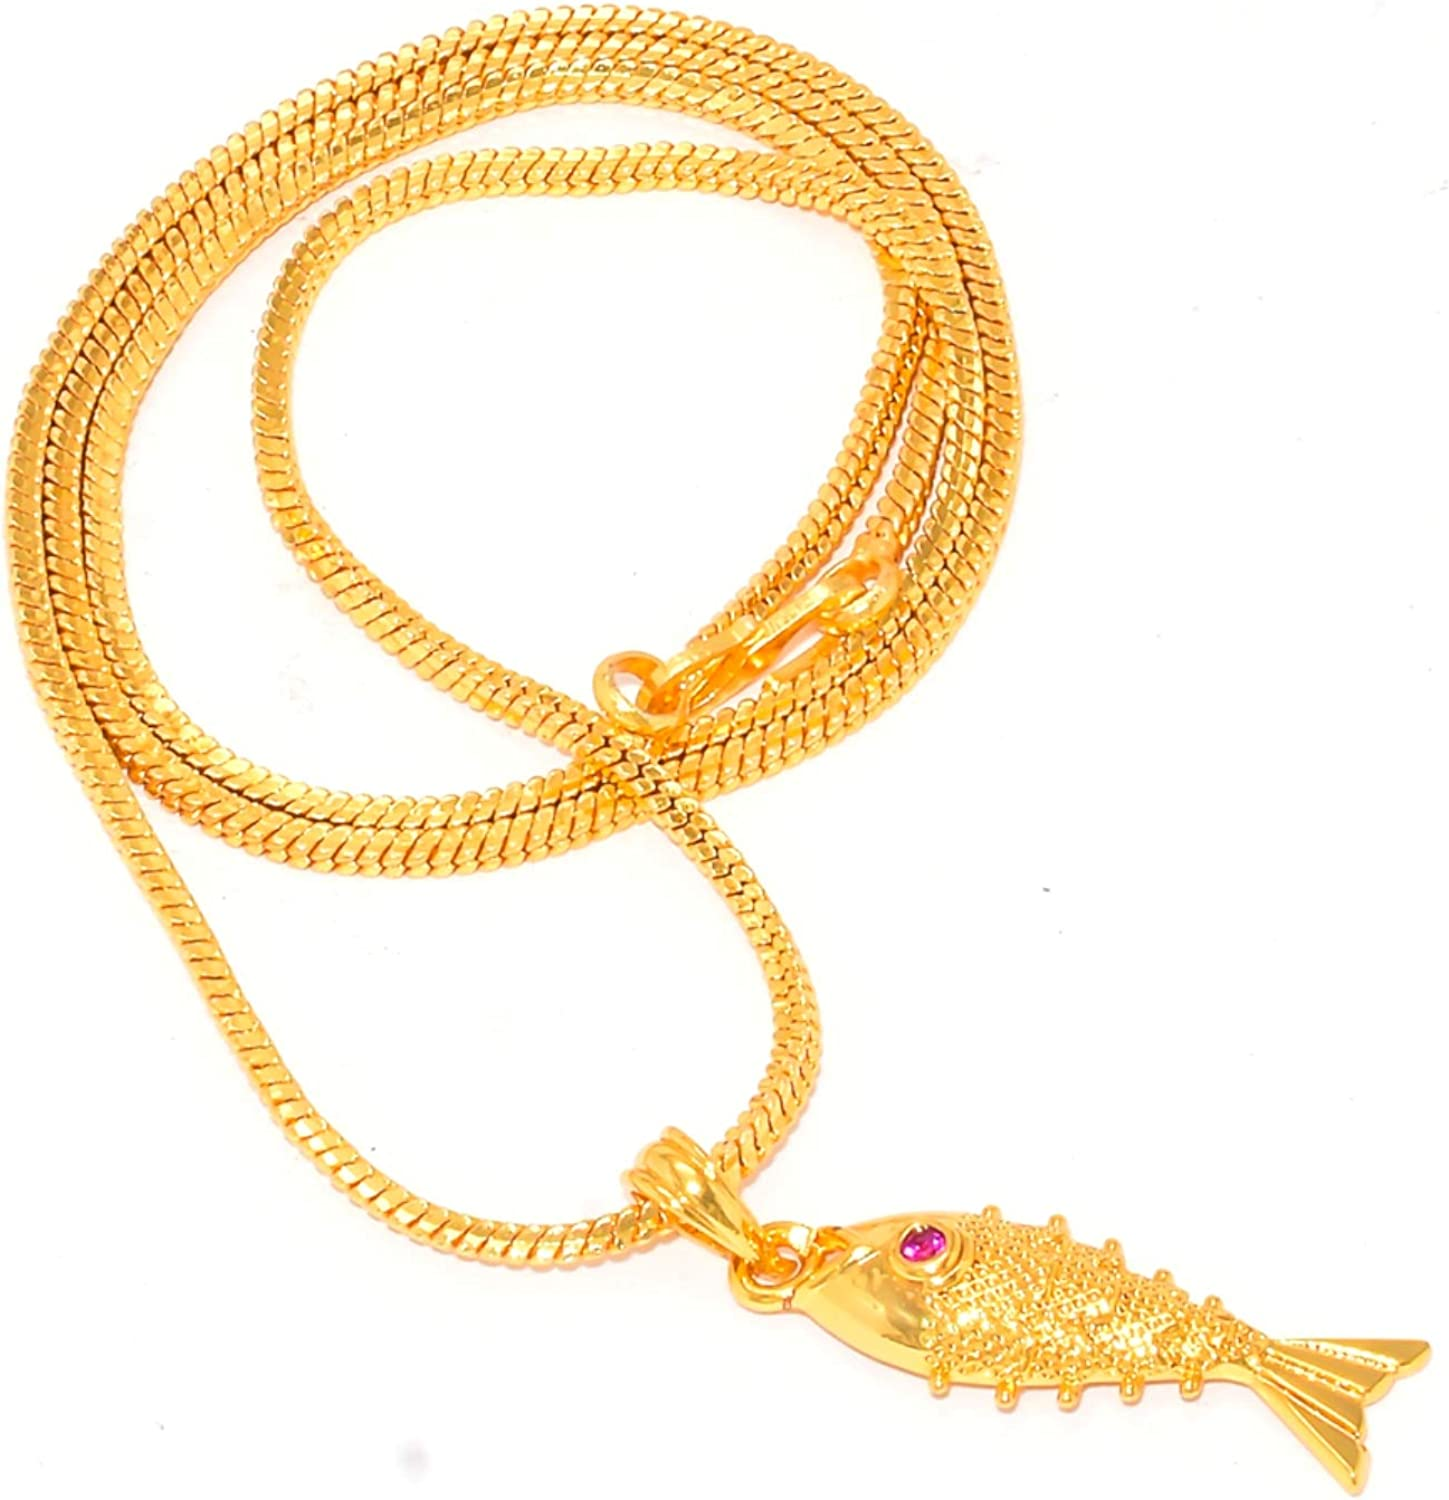 Jewar Pendant Set One Gram Gold Plated 24 inch size Simple Look Handmade Necklace Jewelry For Women & Girls